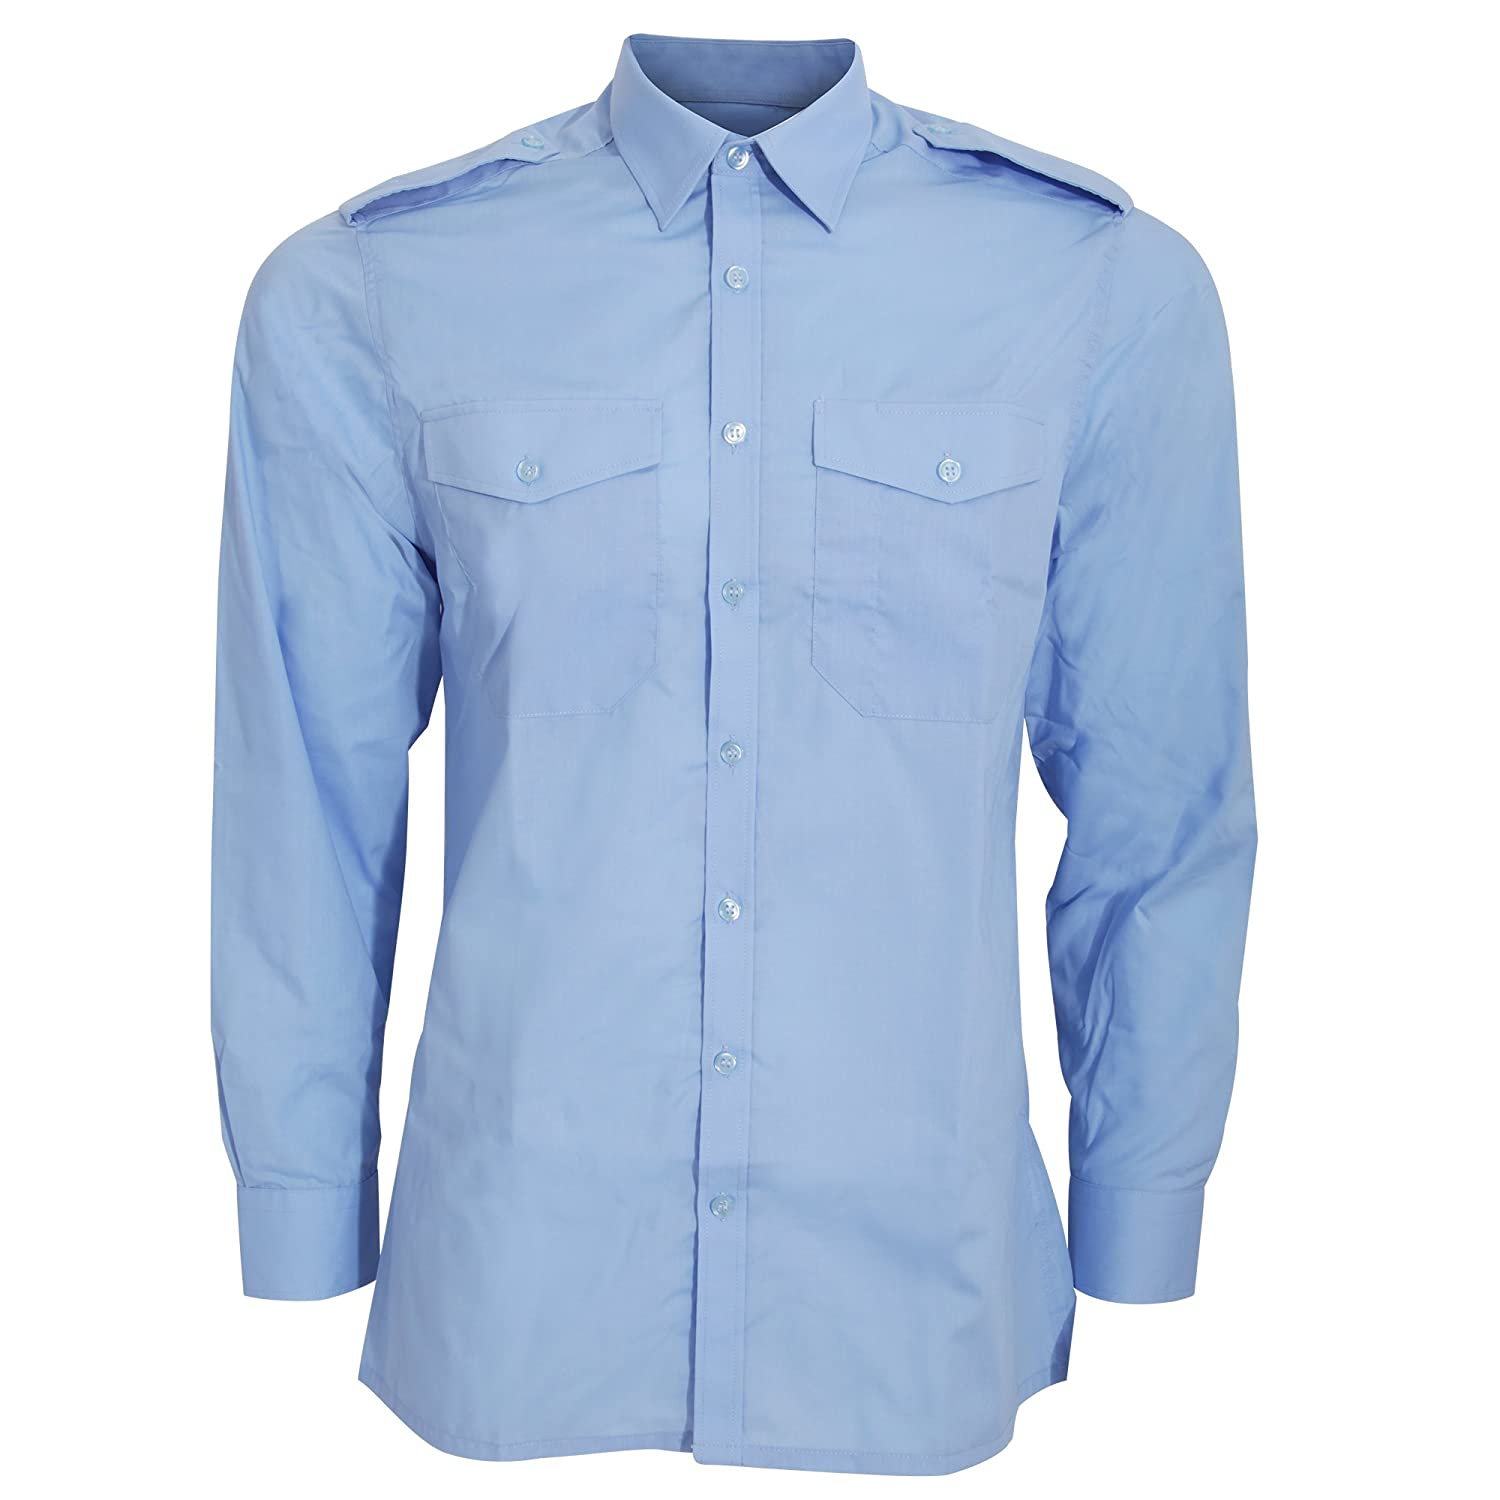 Kustom Kit Mens Long Sleeve Pilot Shirt (18) (Light Blue) UTBC3233_19